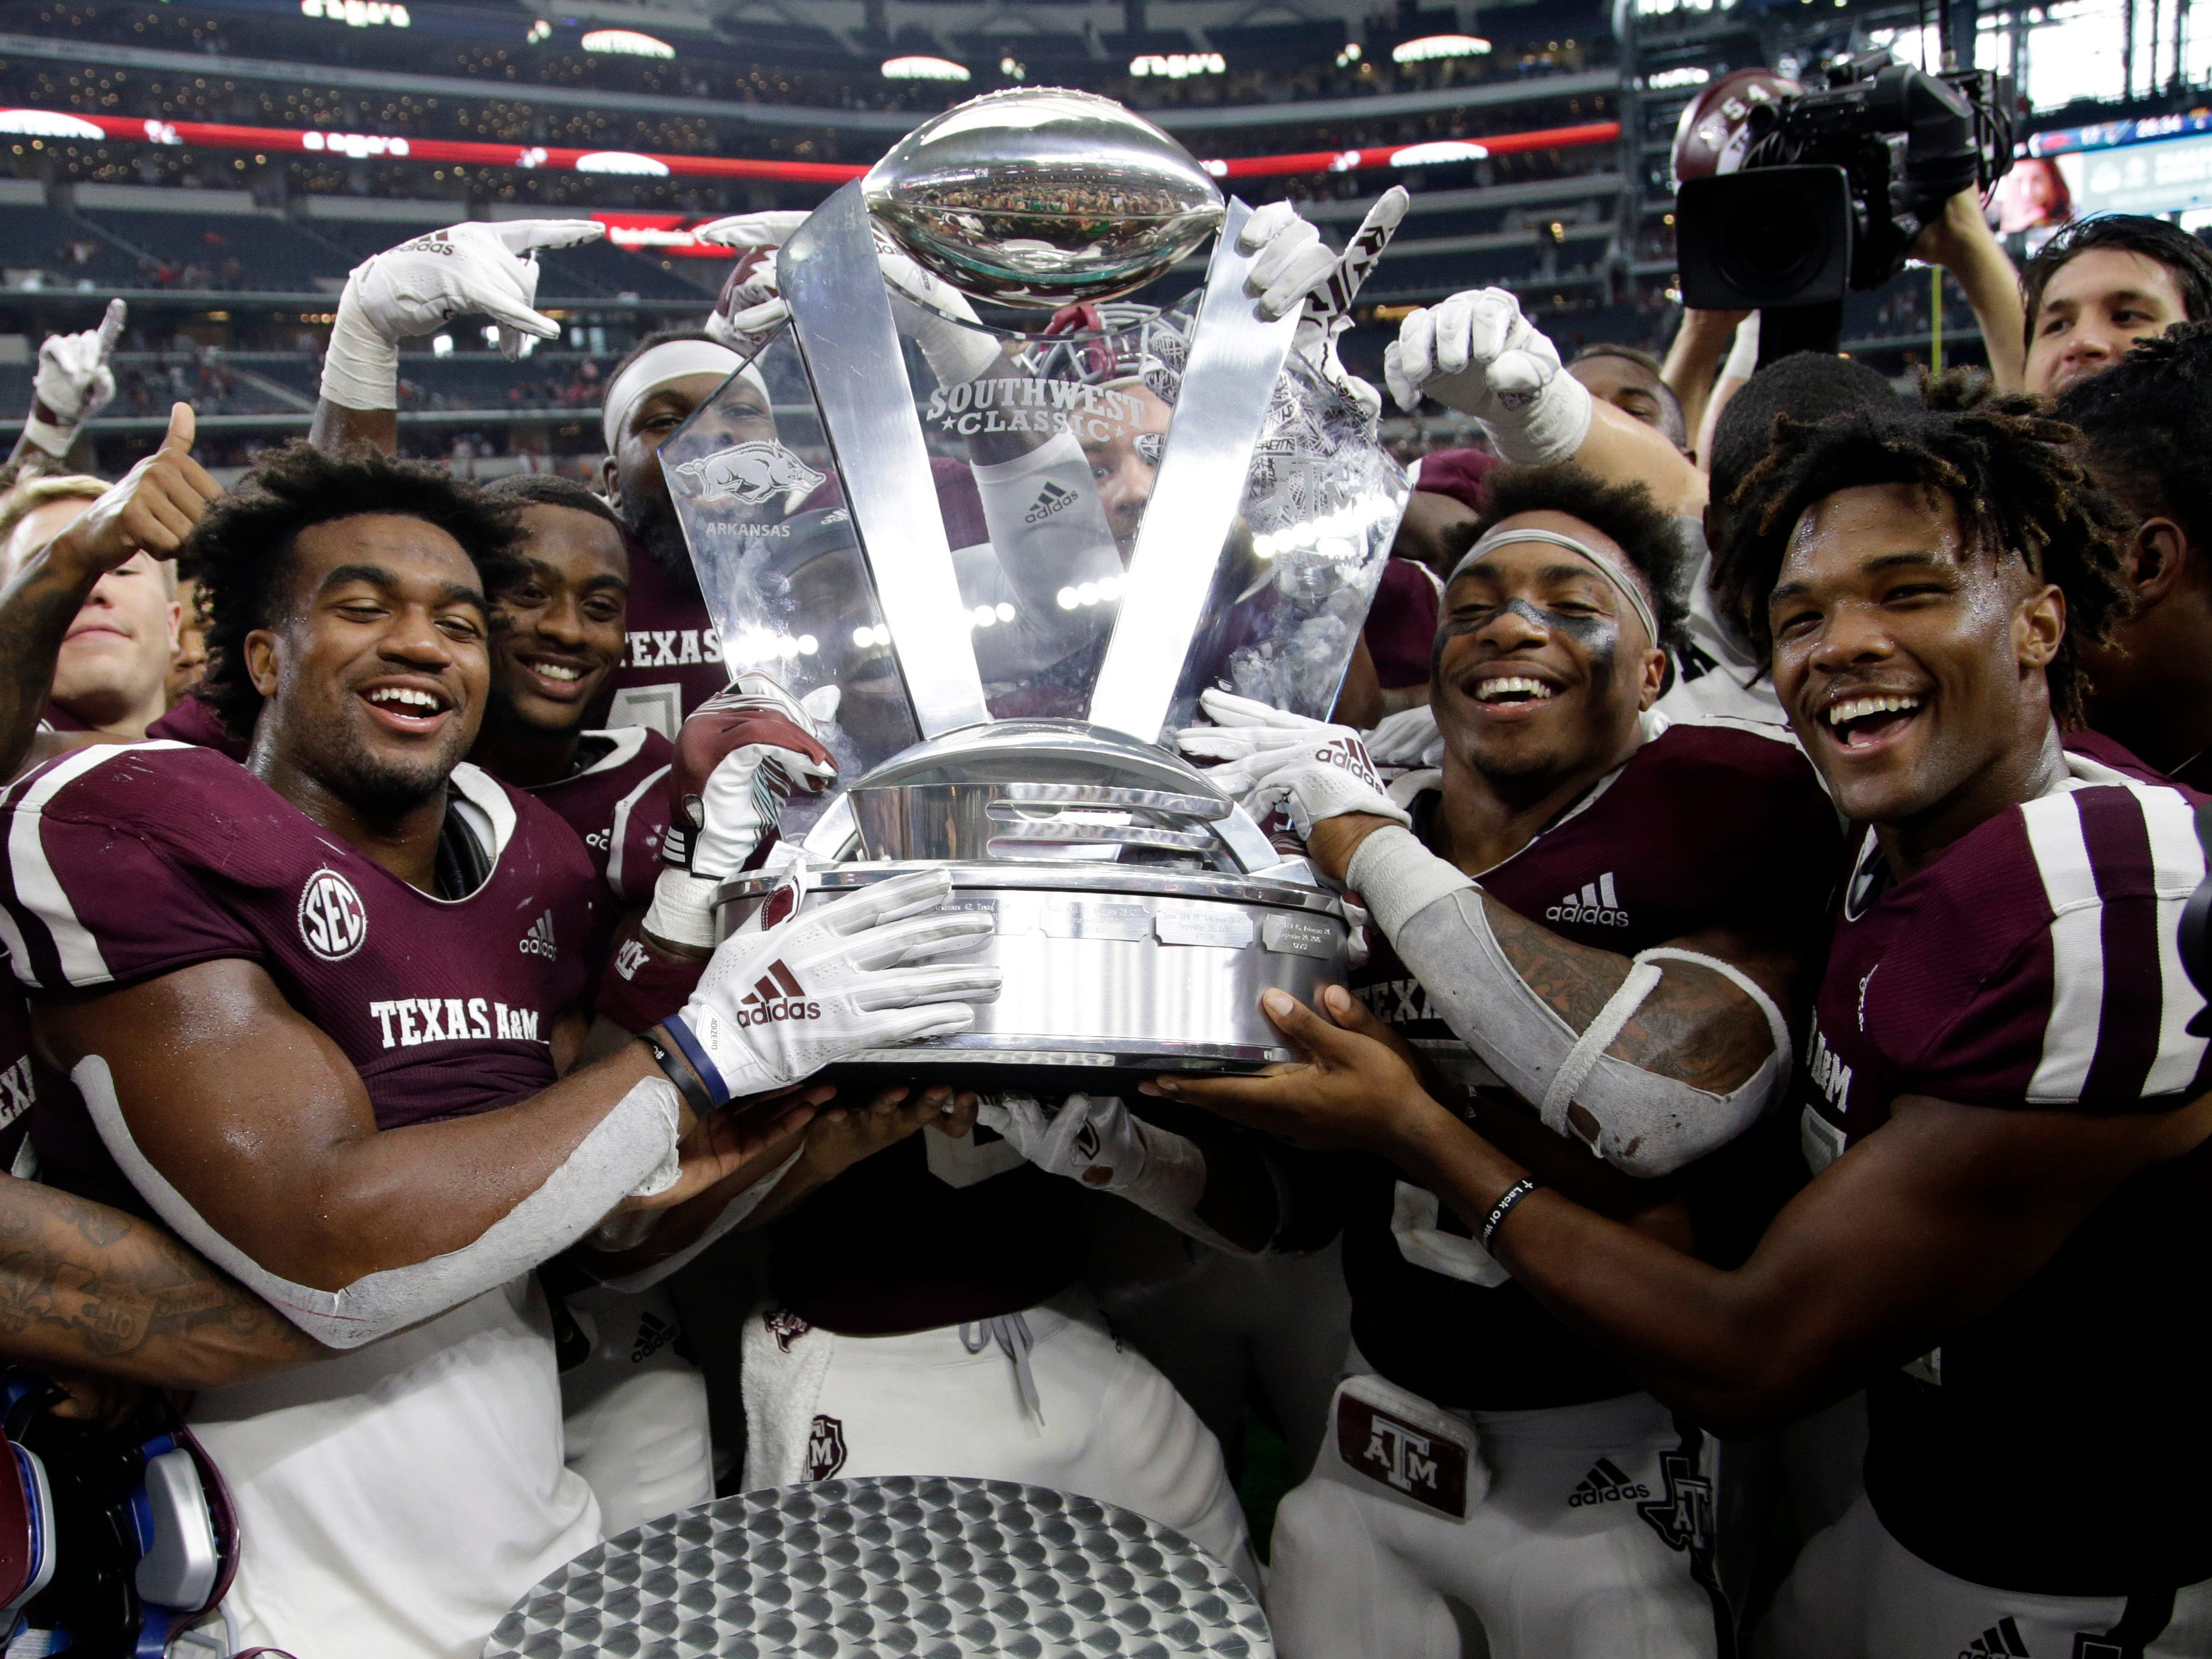 Southwest Classic Trophy: Texas A&M players hold up the Southwestern Classic Trophy after a 24-17 win over Arkansas at AT&T Stadium on Sept. 29.